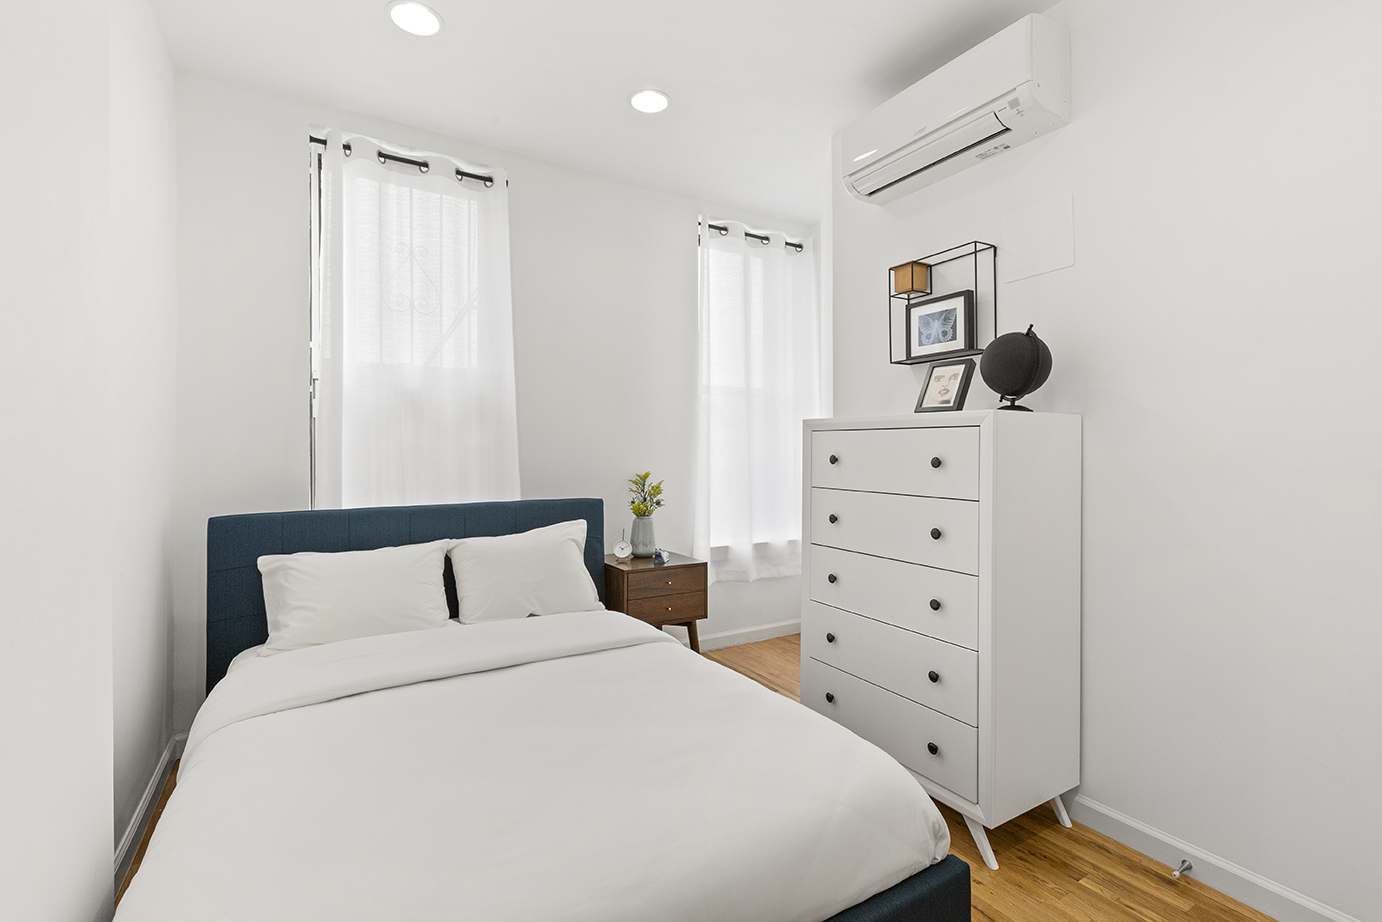 Private Furnished Bedroom In Shared Apartment. Comfortable 4 Bed 2 Bath, Flexible Lease